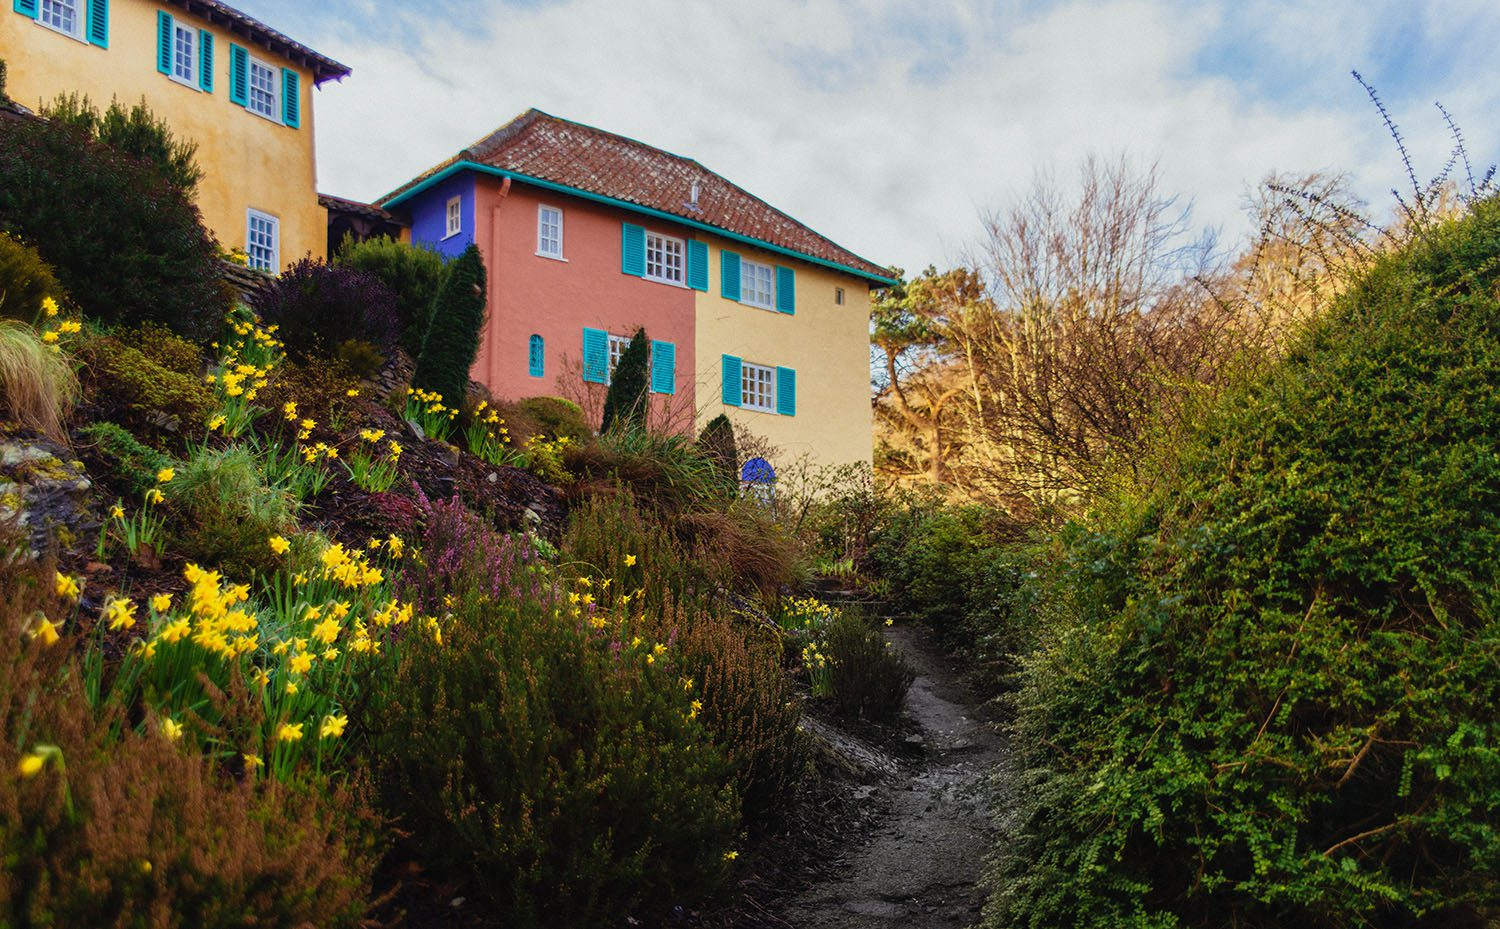 Colorful buildings in Wales